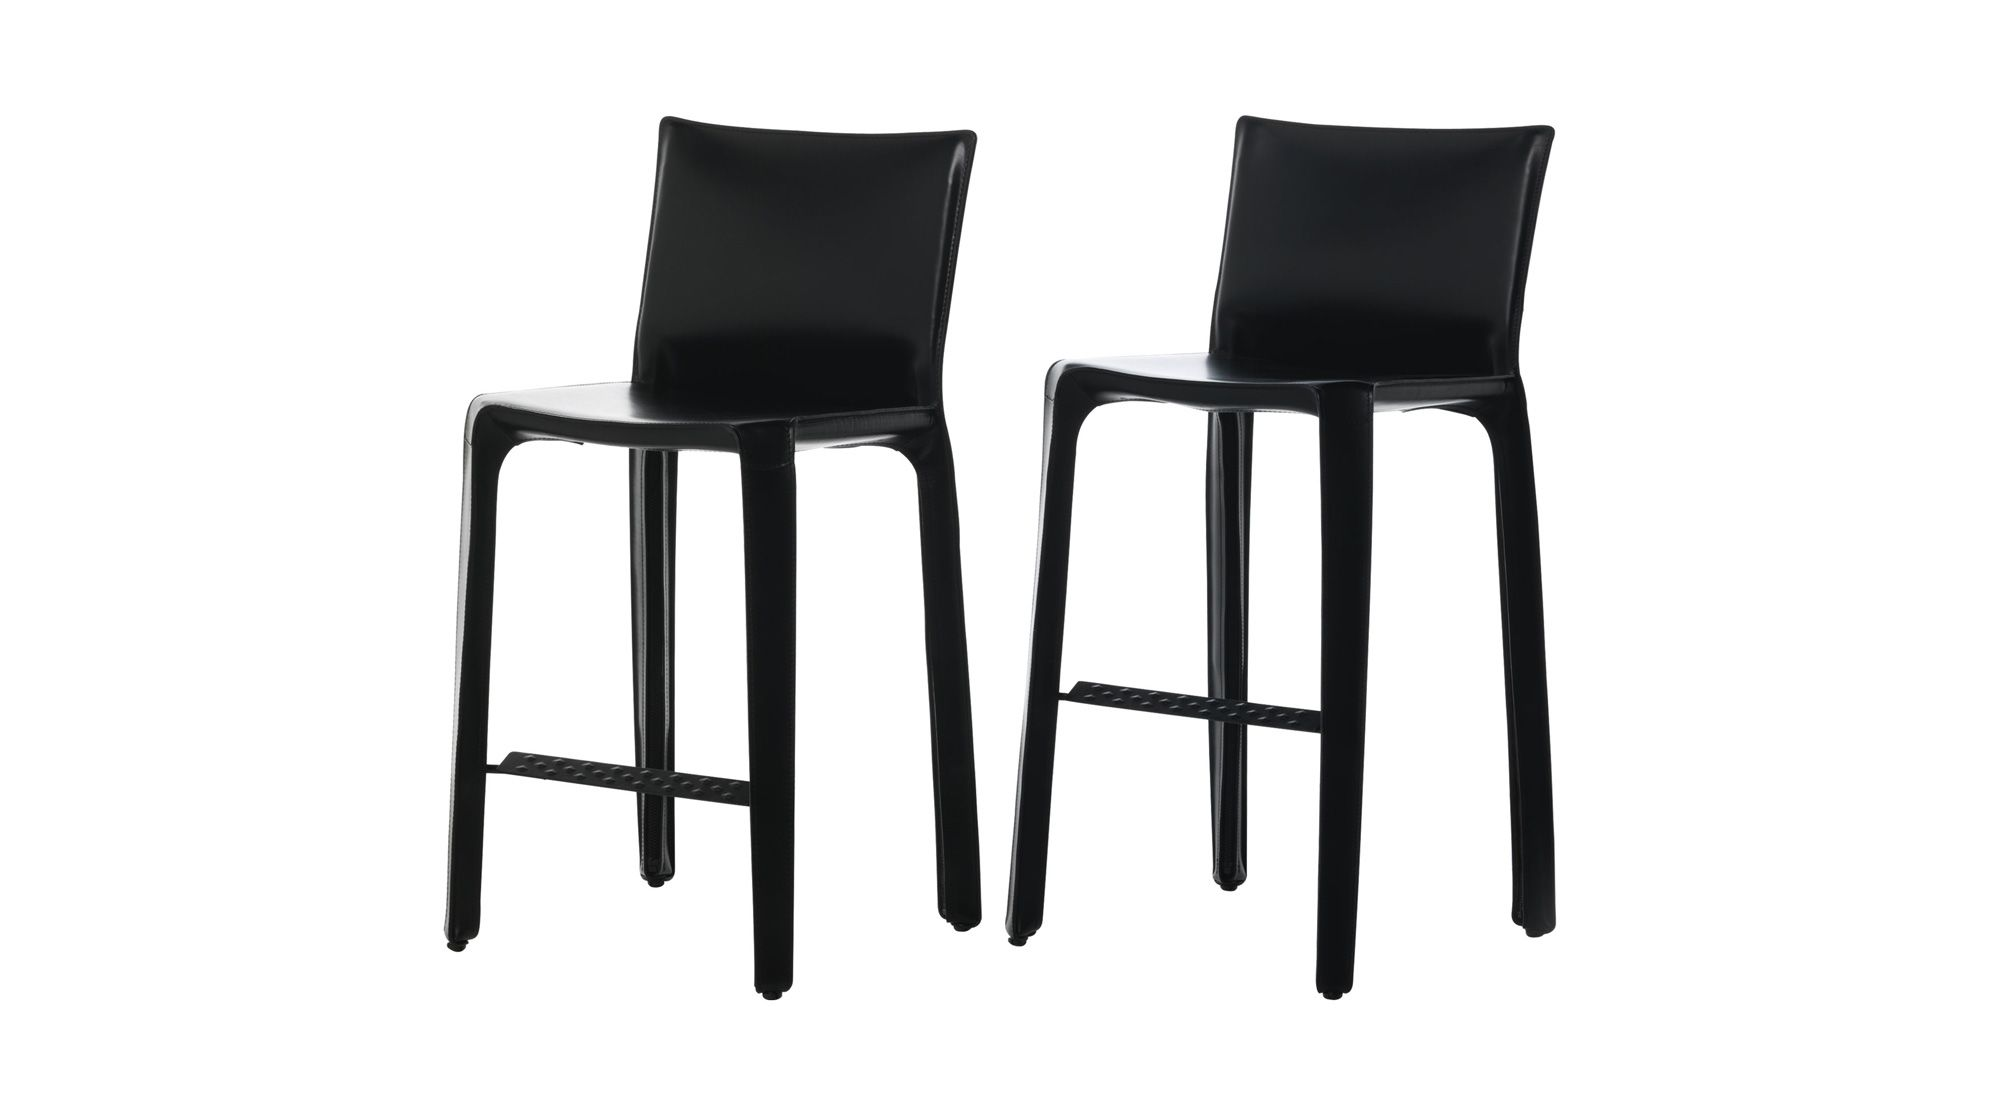 Tabourets De Bar New Cab Cassina 410 Cab Stool Design Mario Bellini Dining Bar